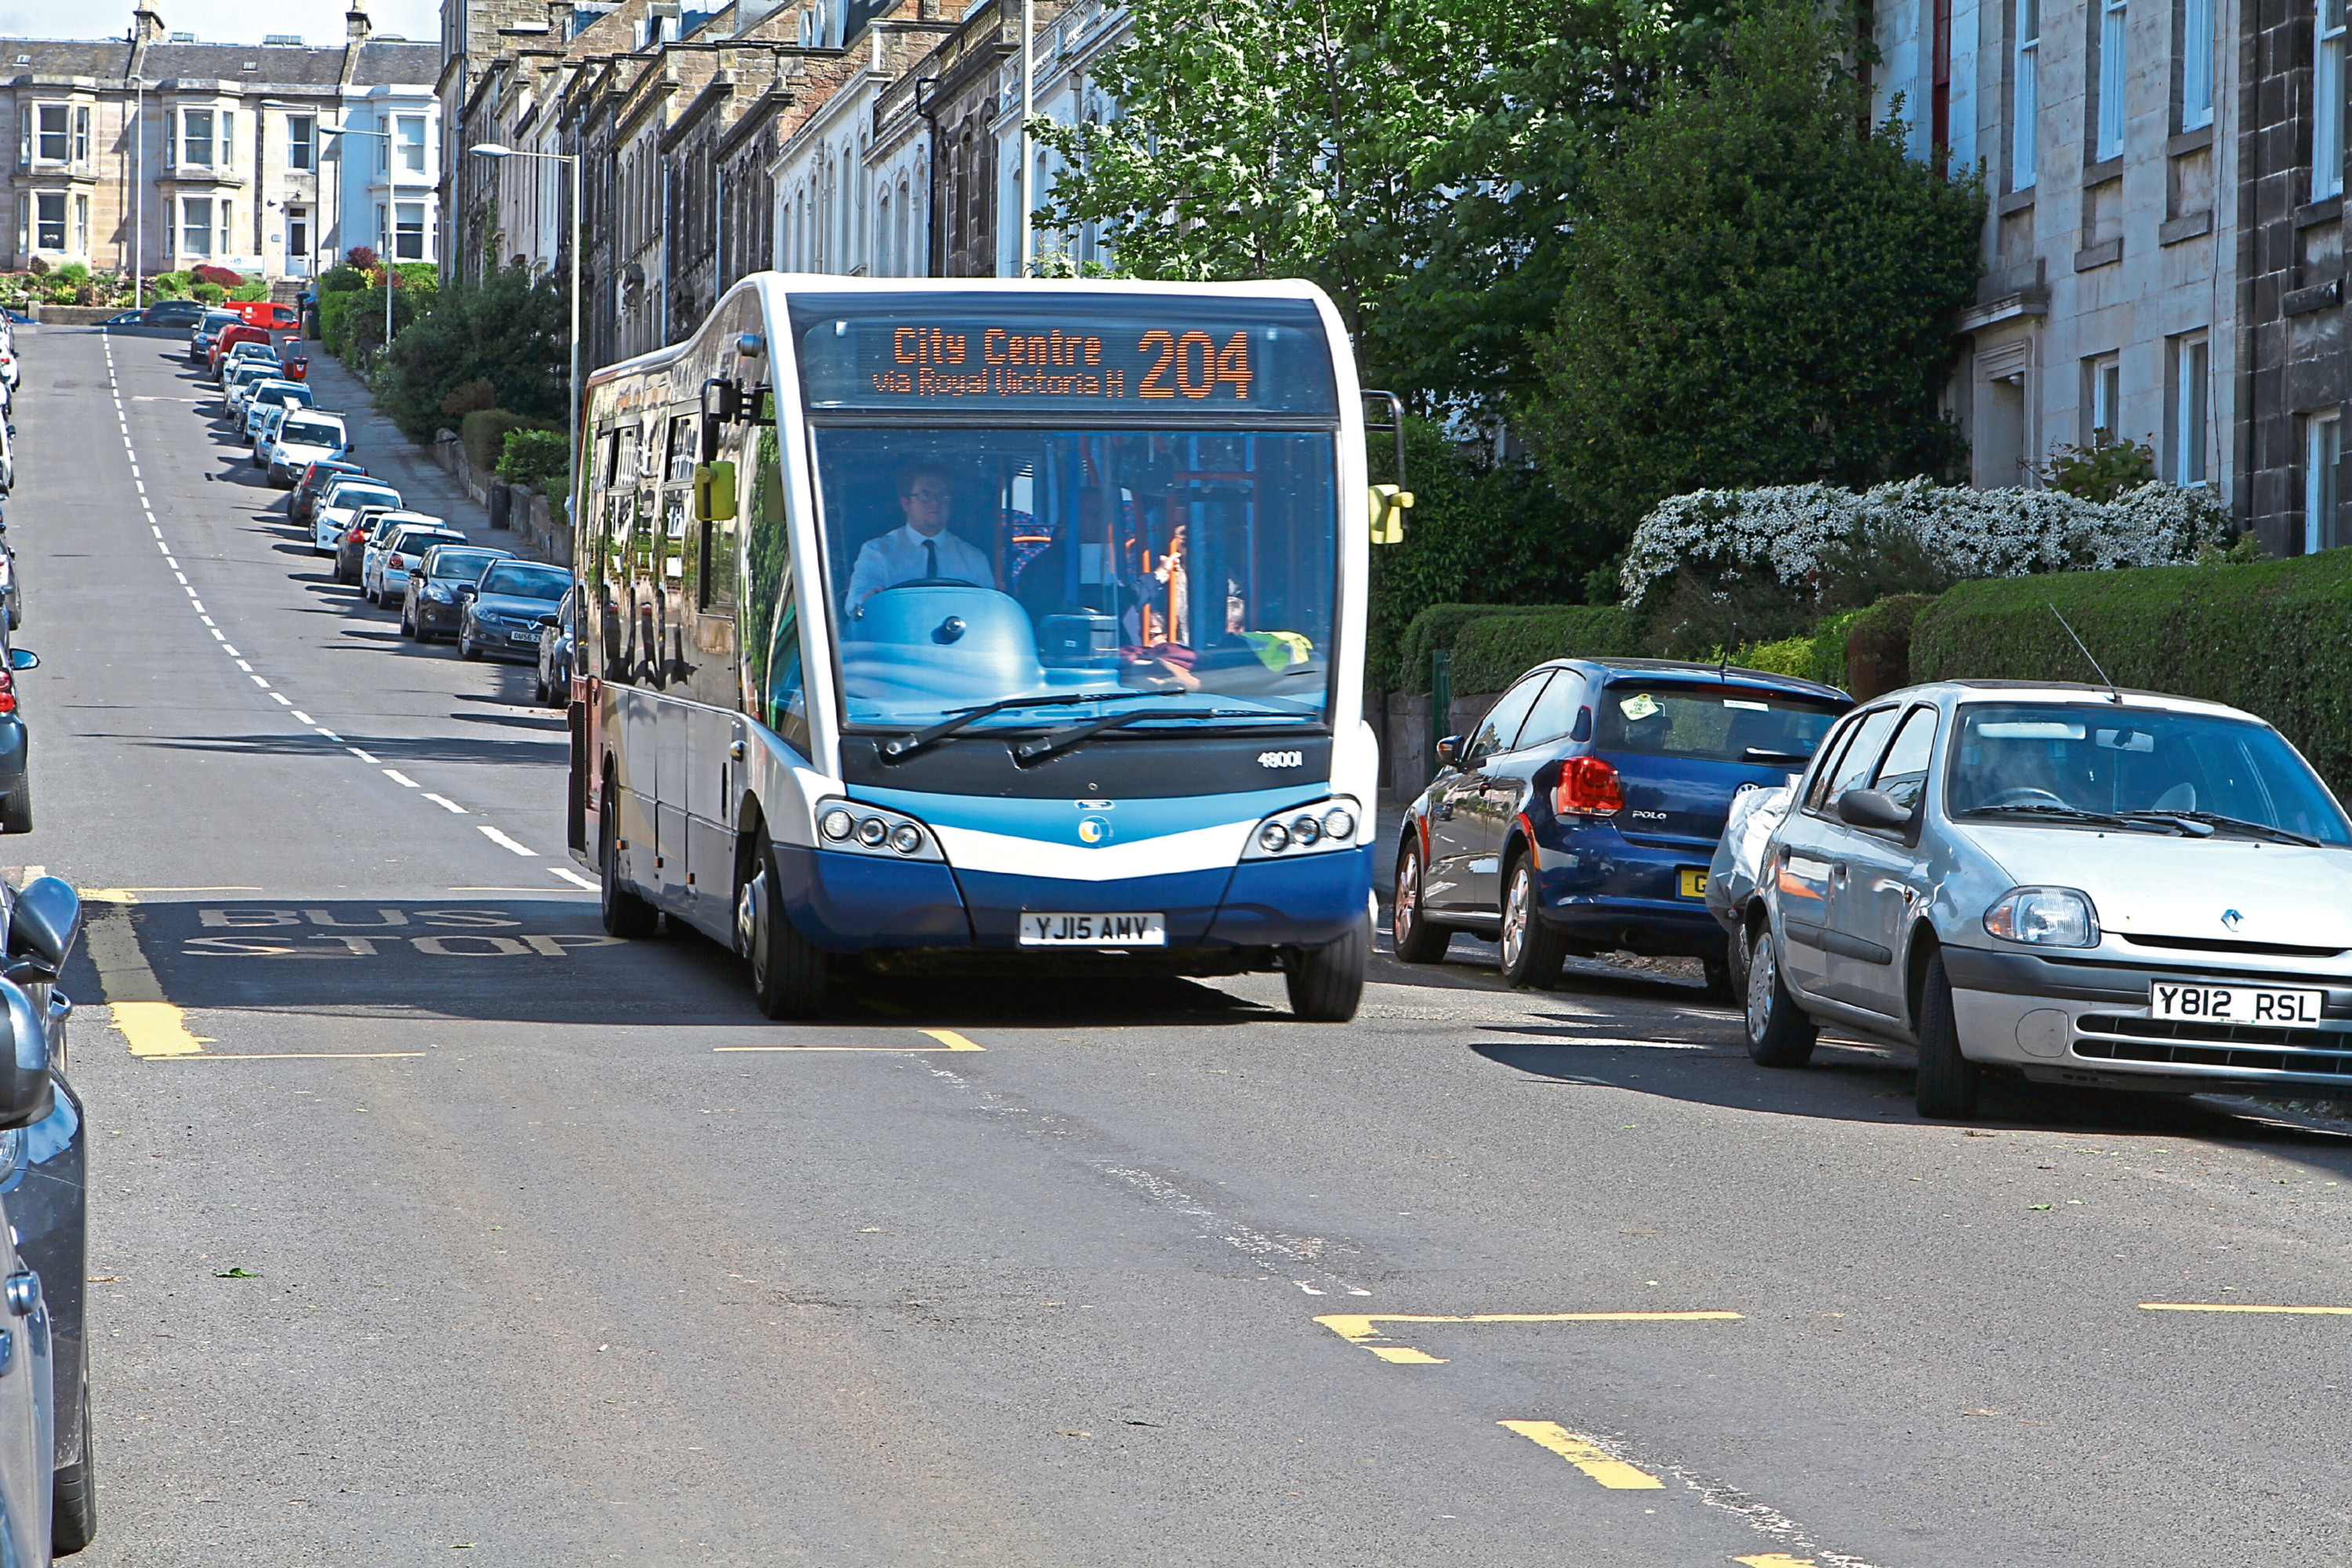 The 204 bus, in Windsor Street, in Dundee.